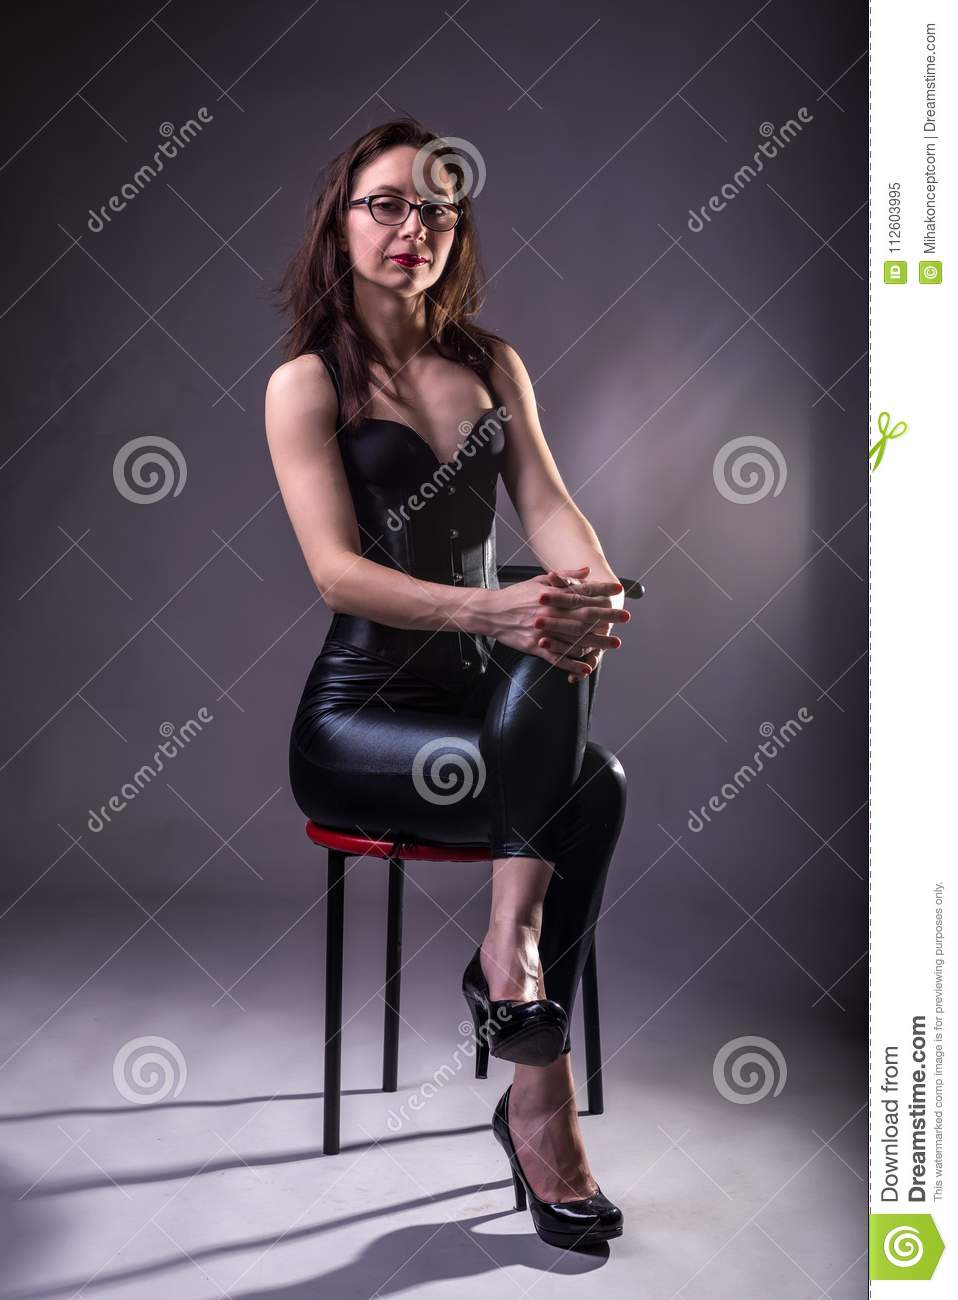 Apologise, women latex and heels